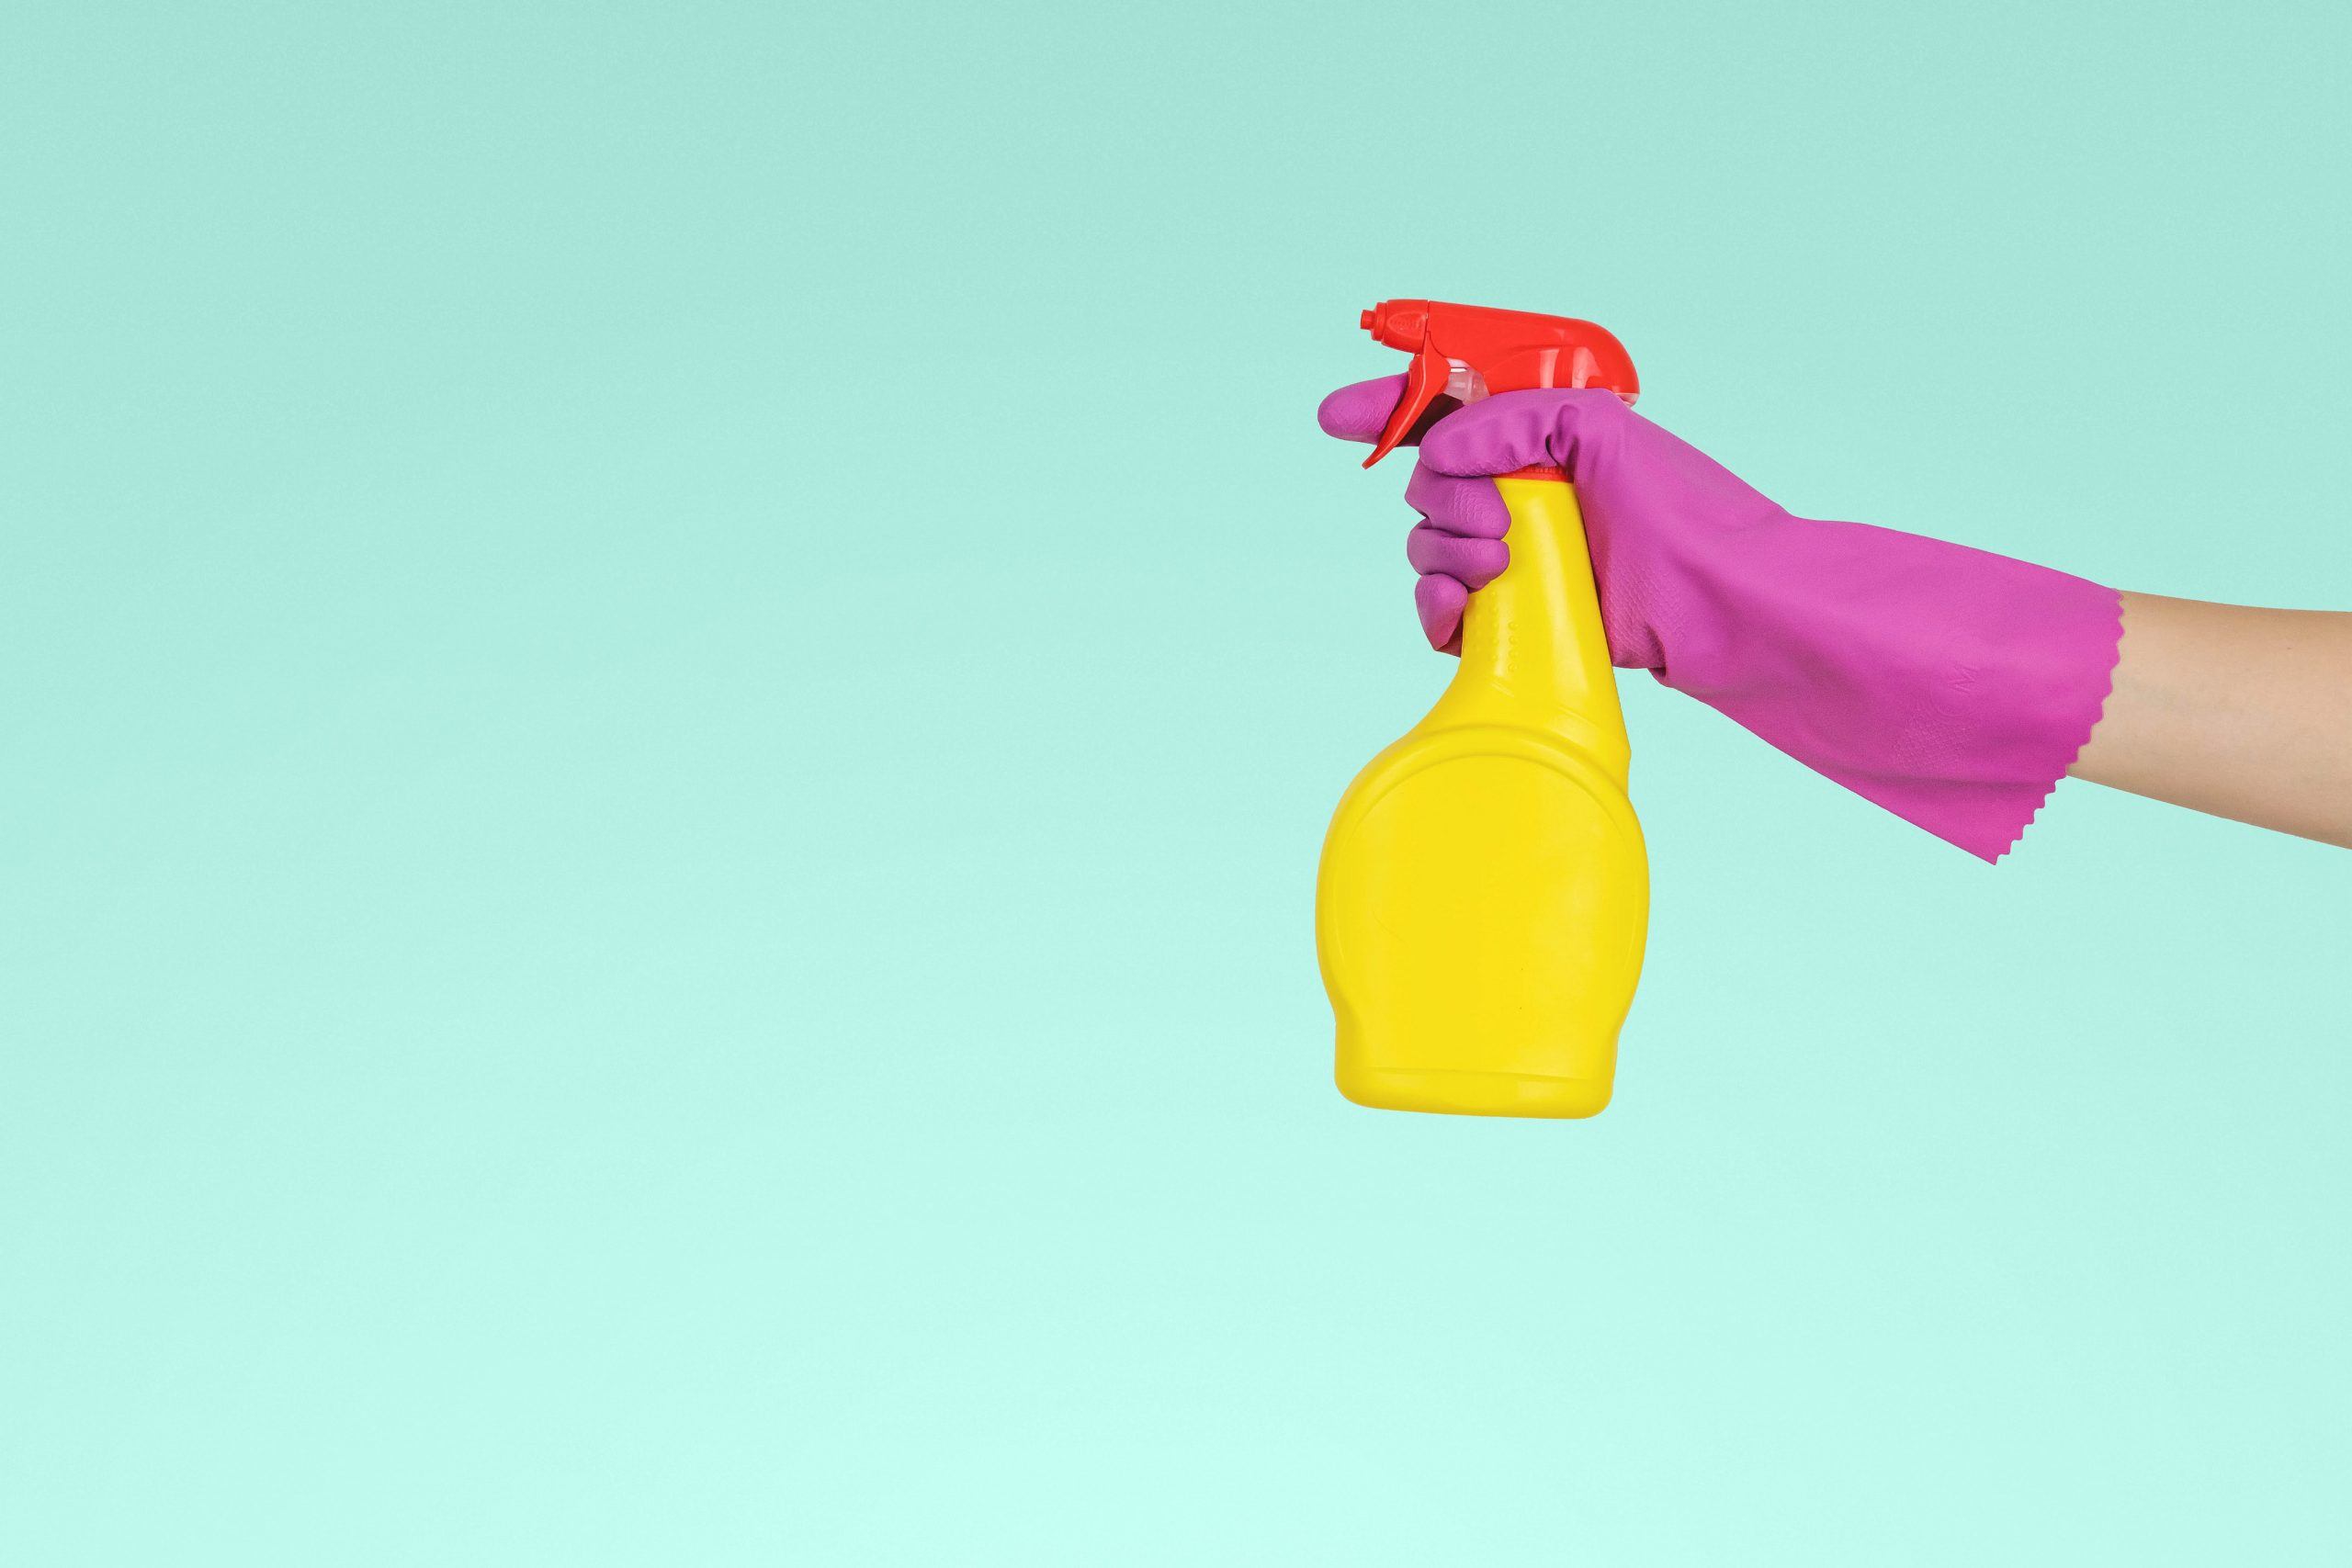 Hand in cleaning gloves, disinfecting a home with spray